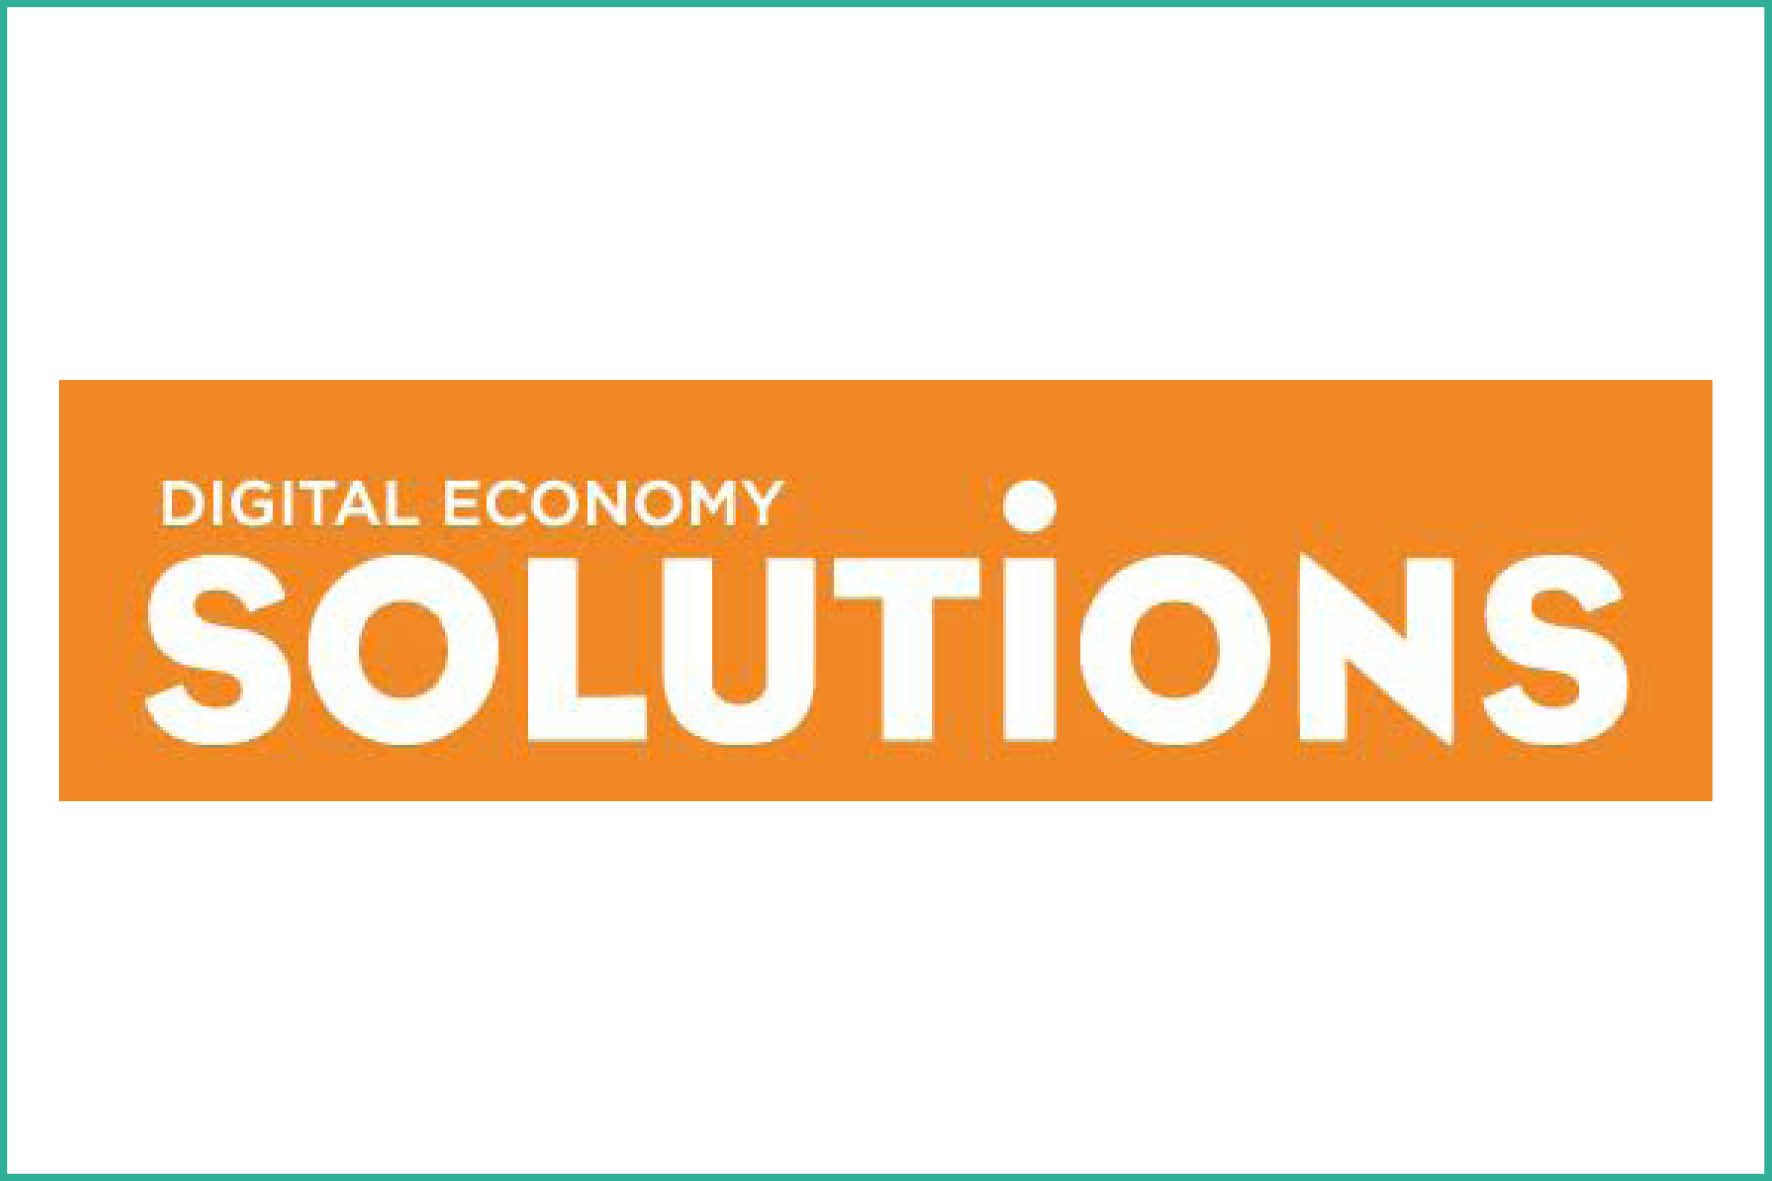 bcc-digital-economy-solutions